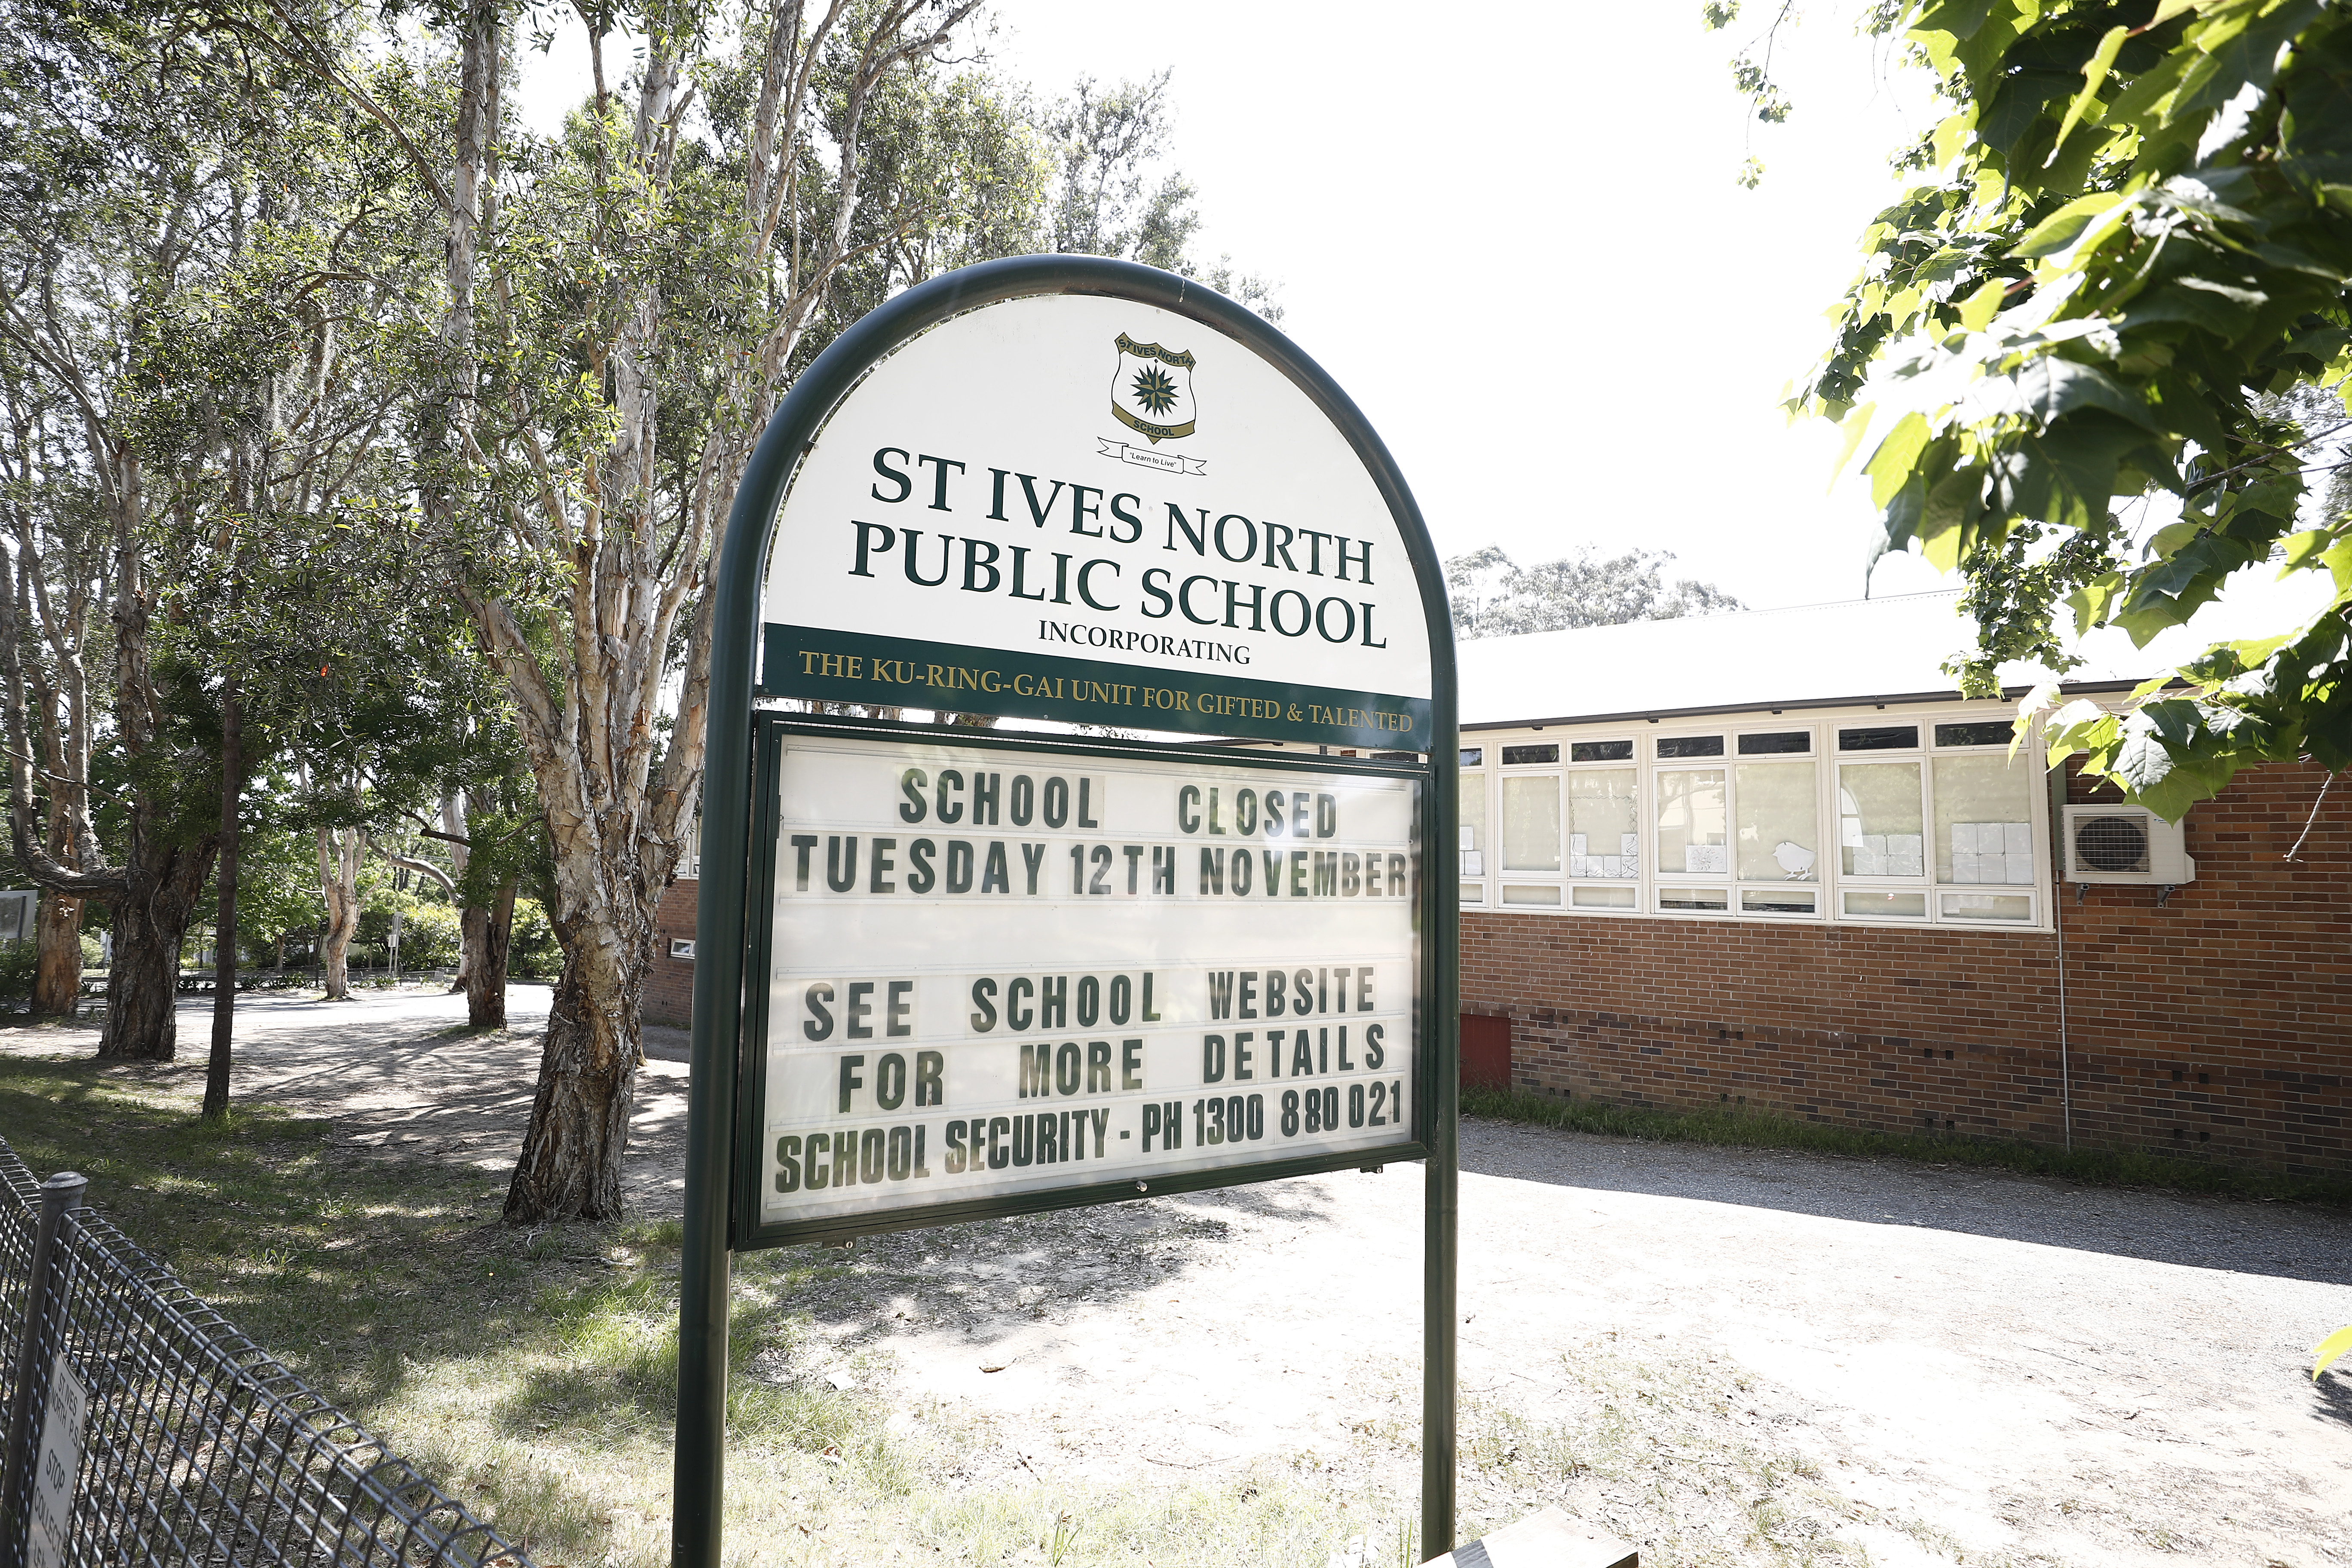 A sign displays information about the closure of St Ives North Public School on November 12 in Sydney.